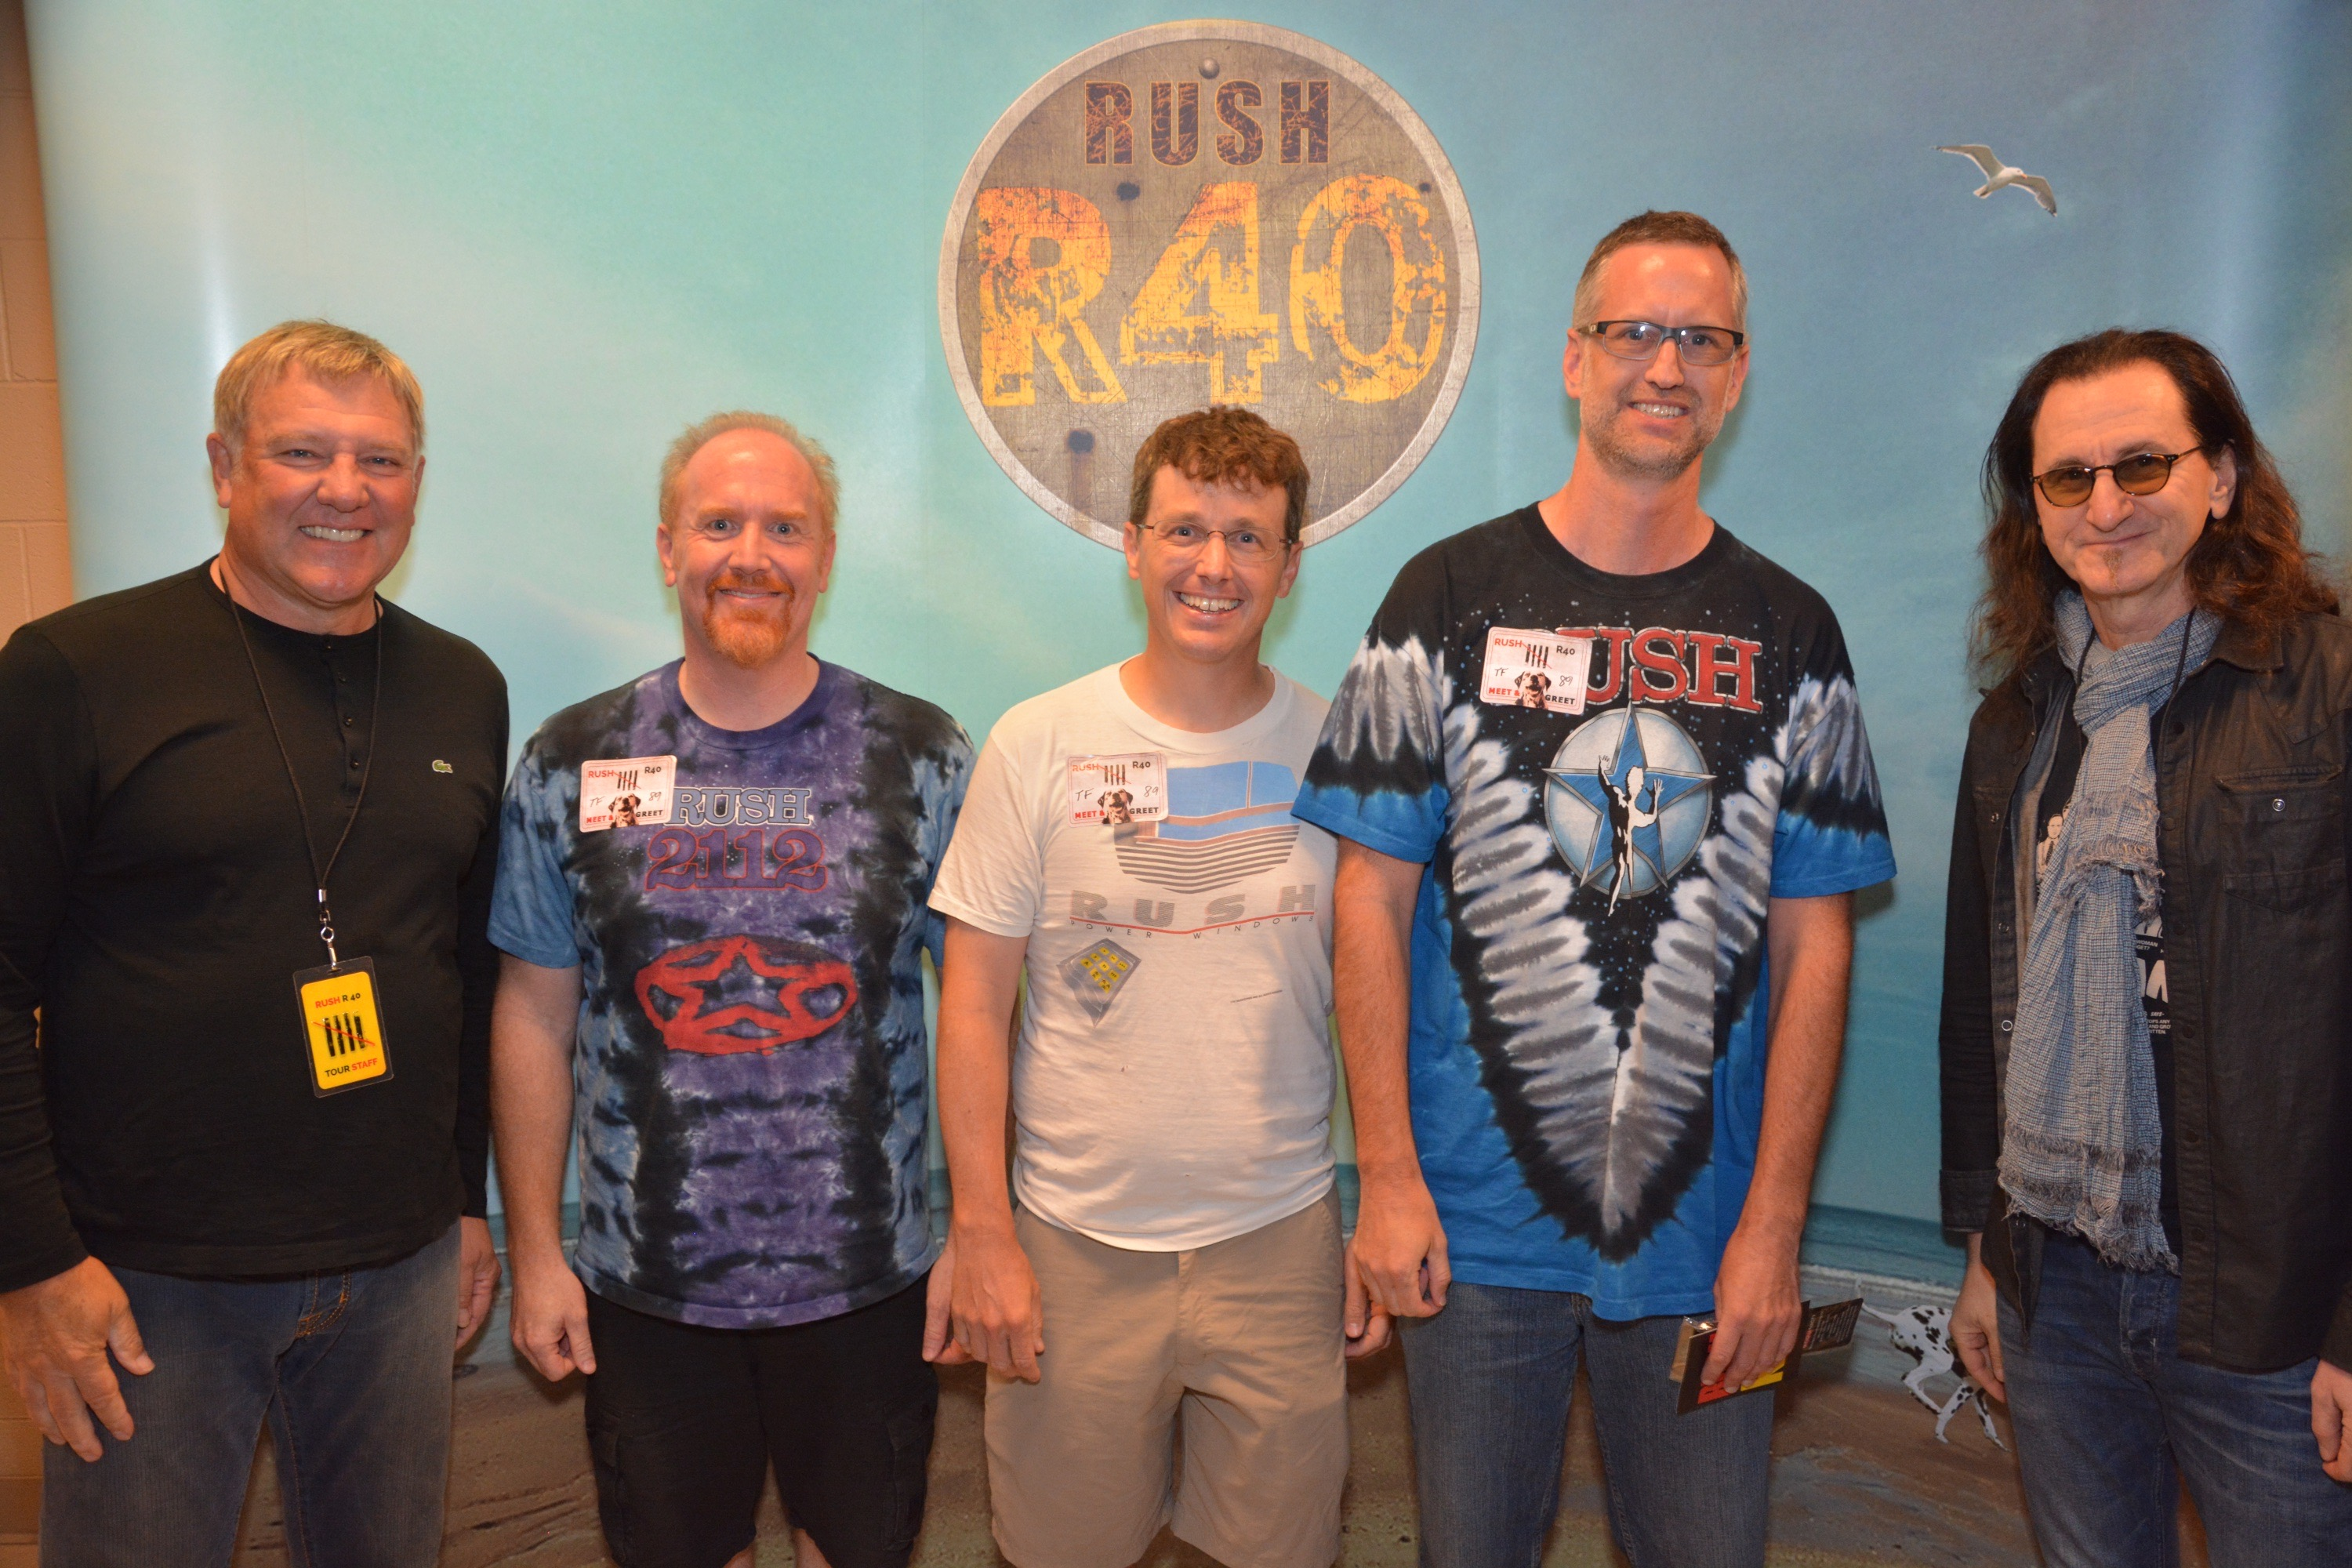 Mike Massé meets Rush